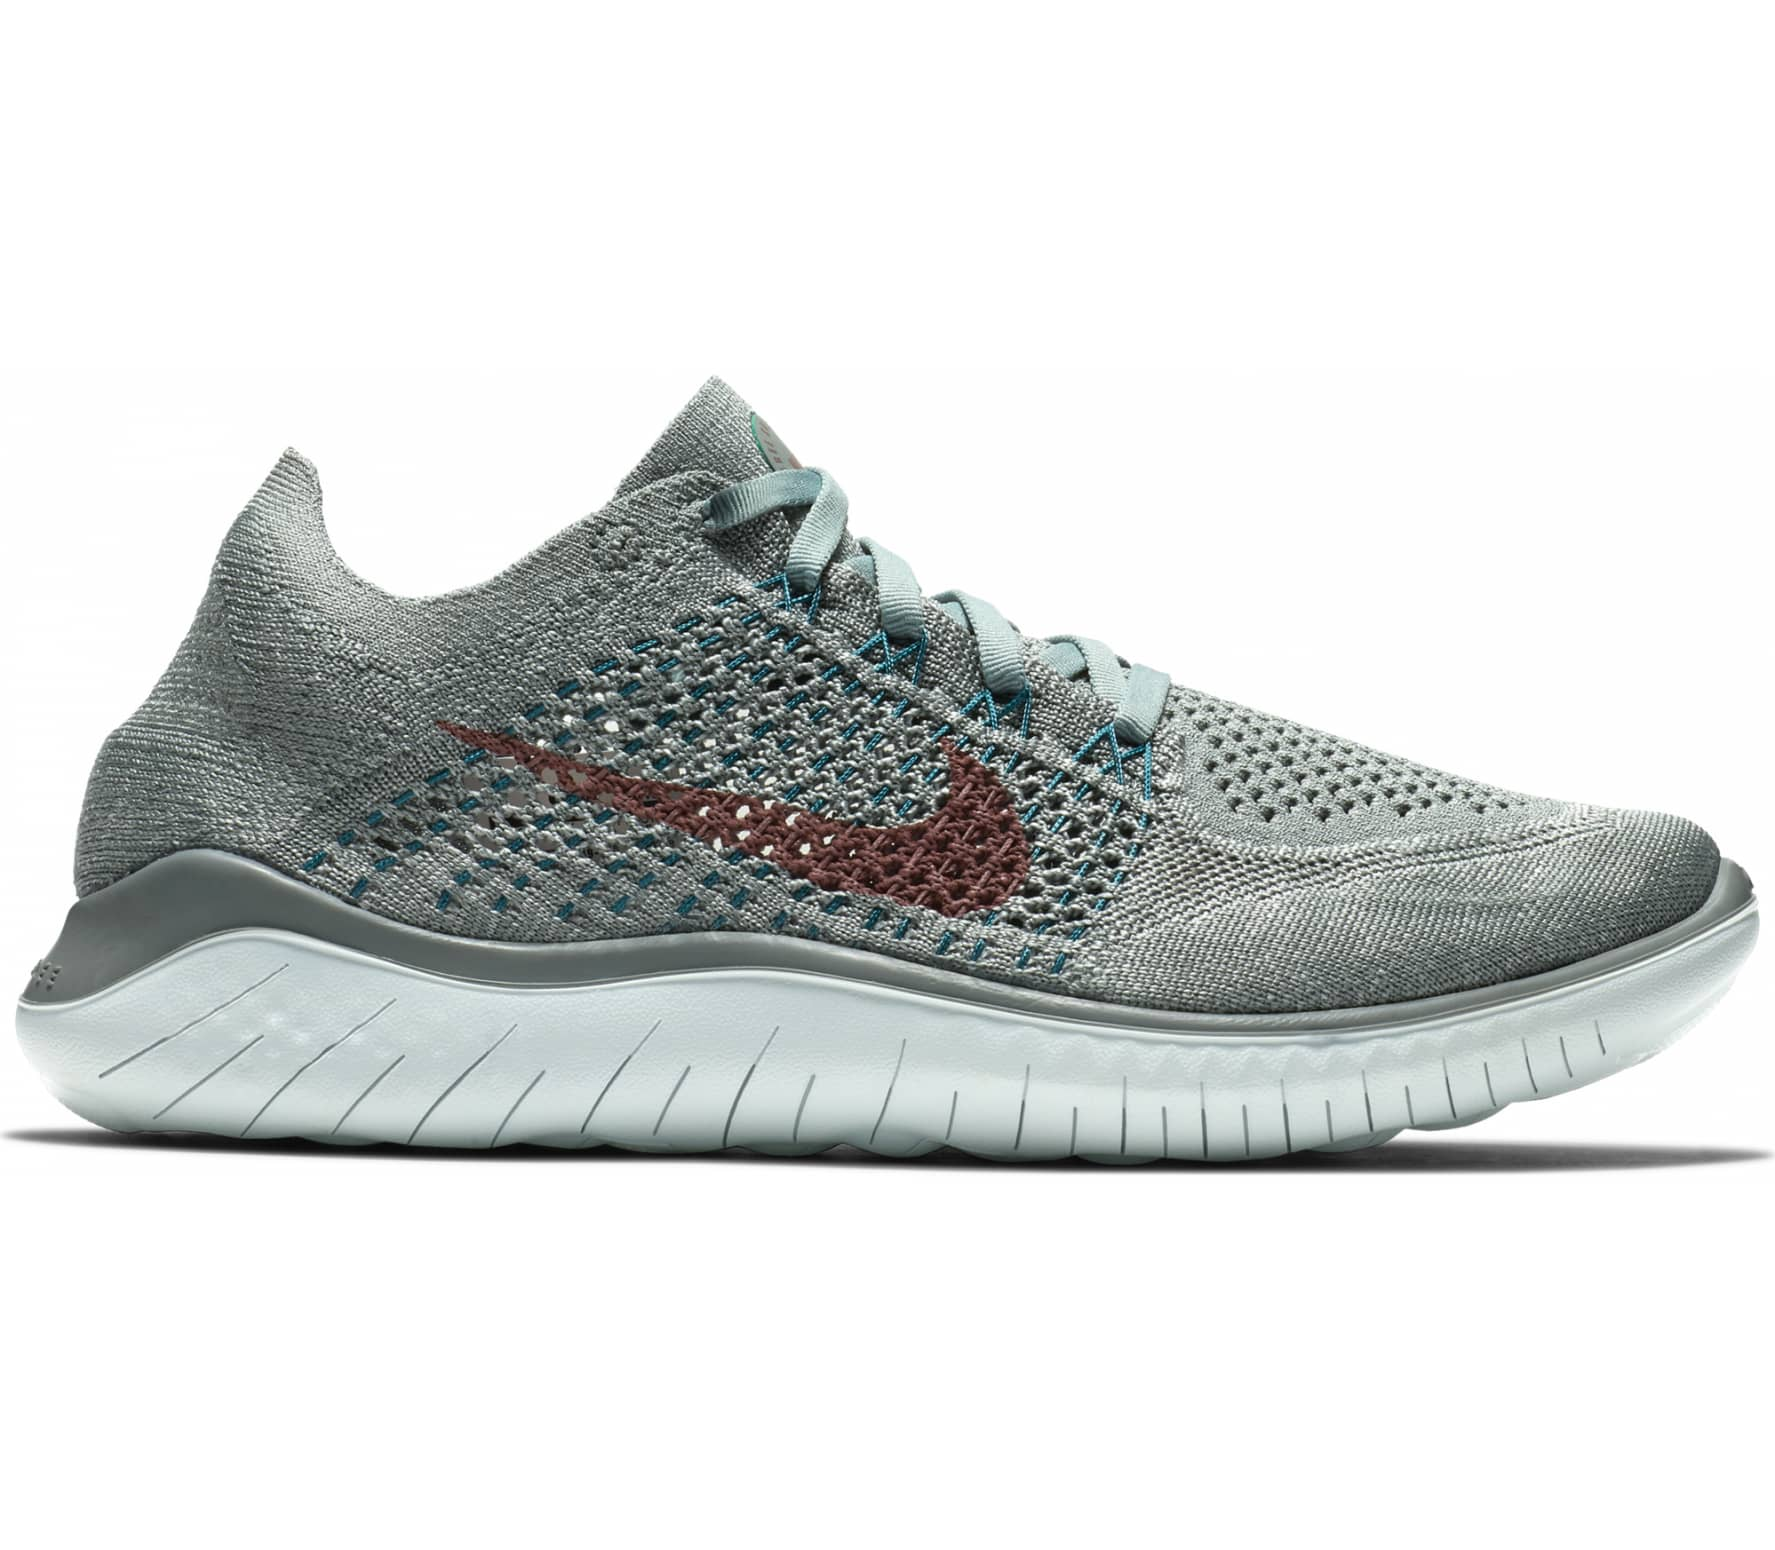 0f8d4370c11 Nike - Free RN Flyknit 2018 women s running shoes (grey) - buy it at ...